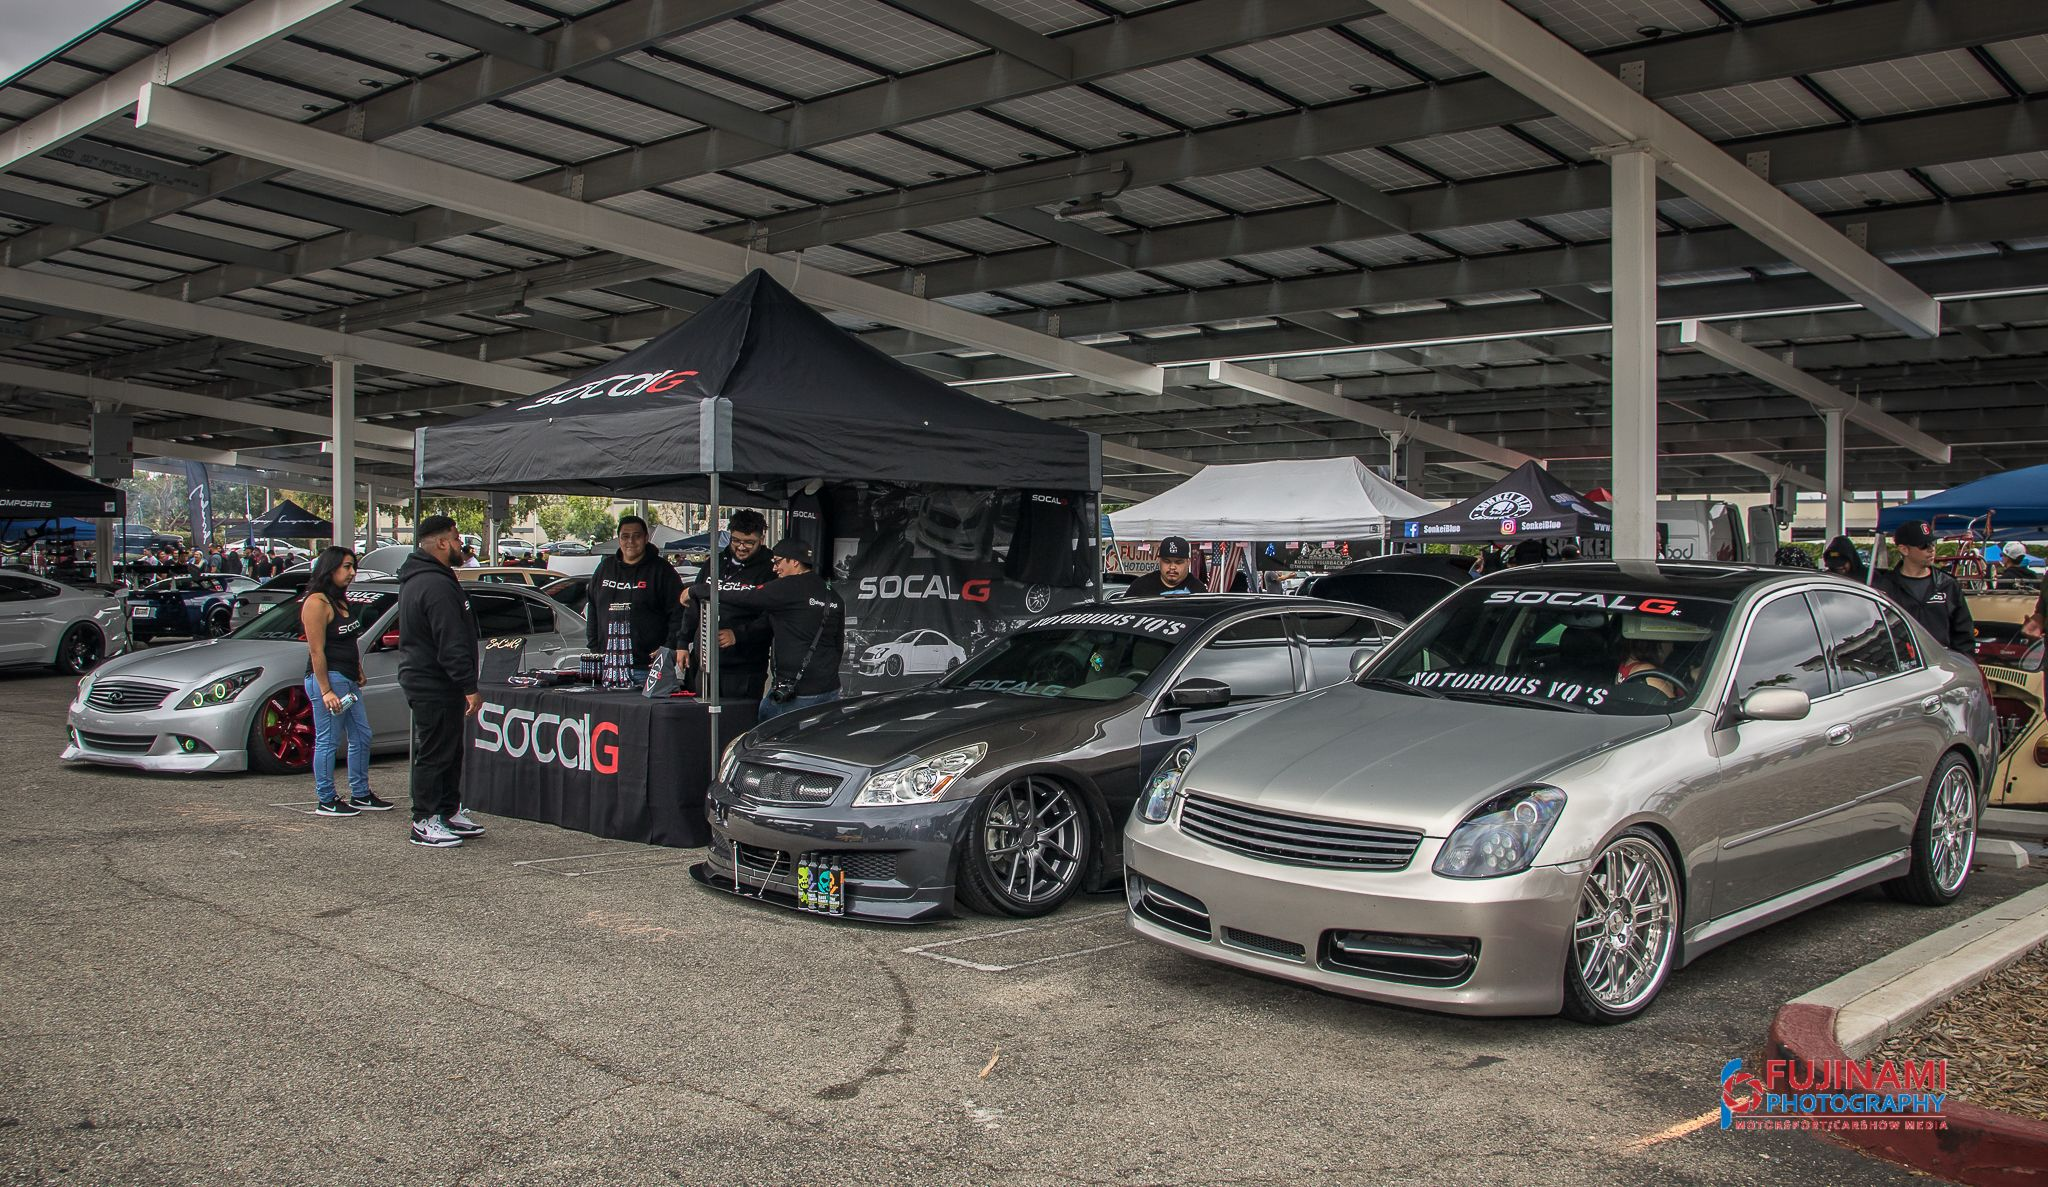 G35 And G37 Sedans At The Socalg Booth At A Car Show G37 Sedan Car Car Show